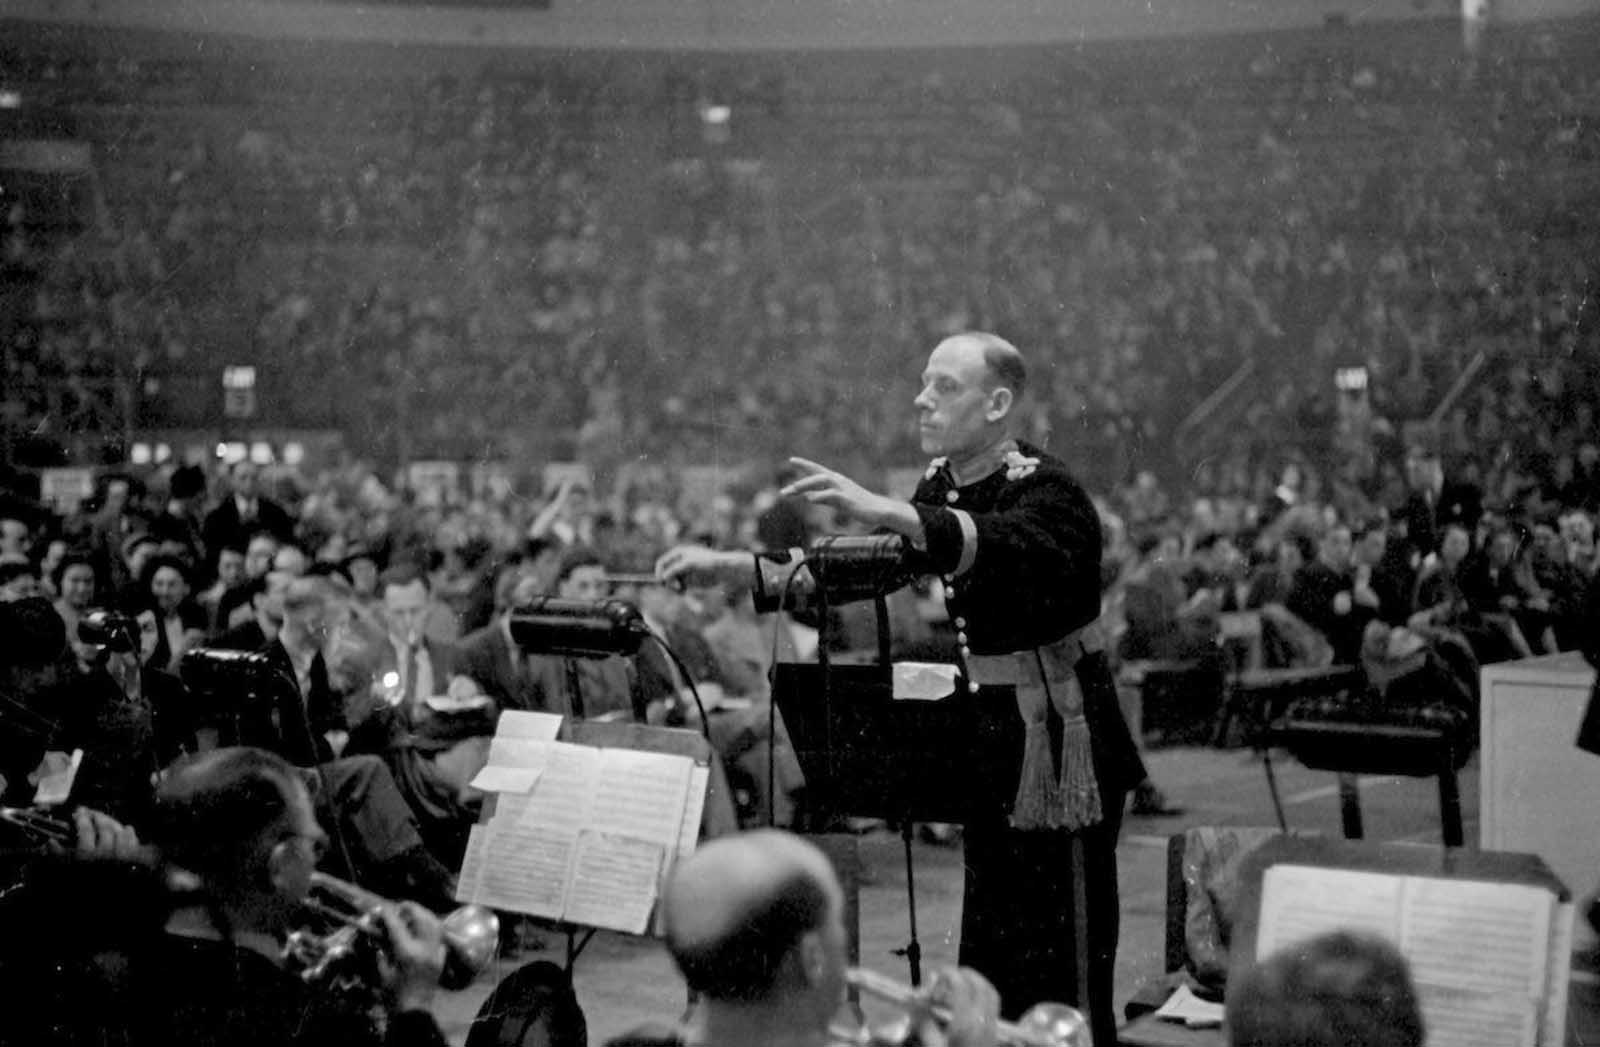 A band leader conducts his band at a meeting of the British Communist Party at the Empress stadium in Earls Court, London. 1939.